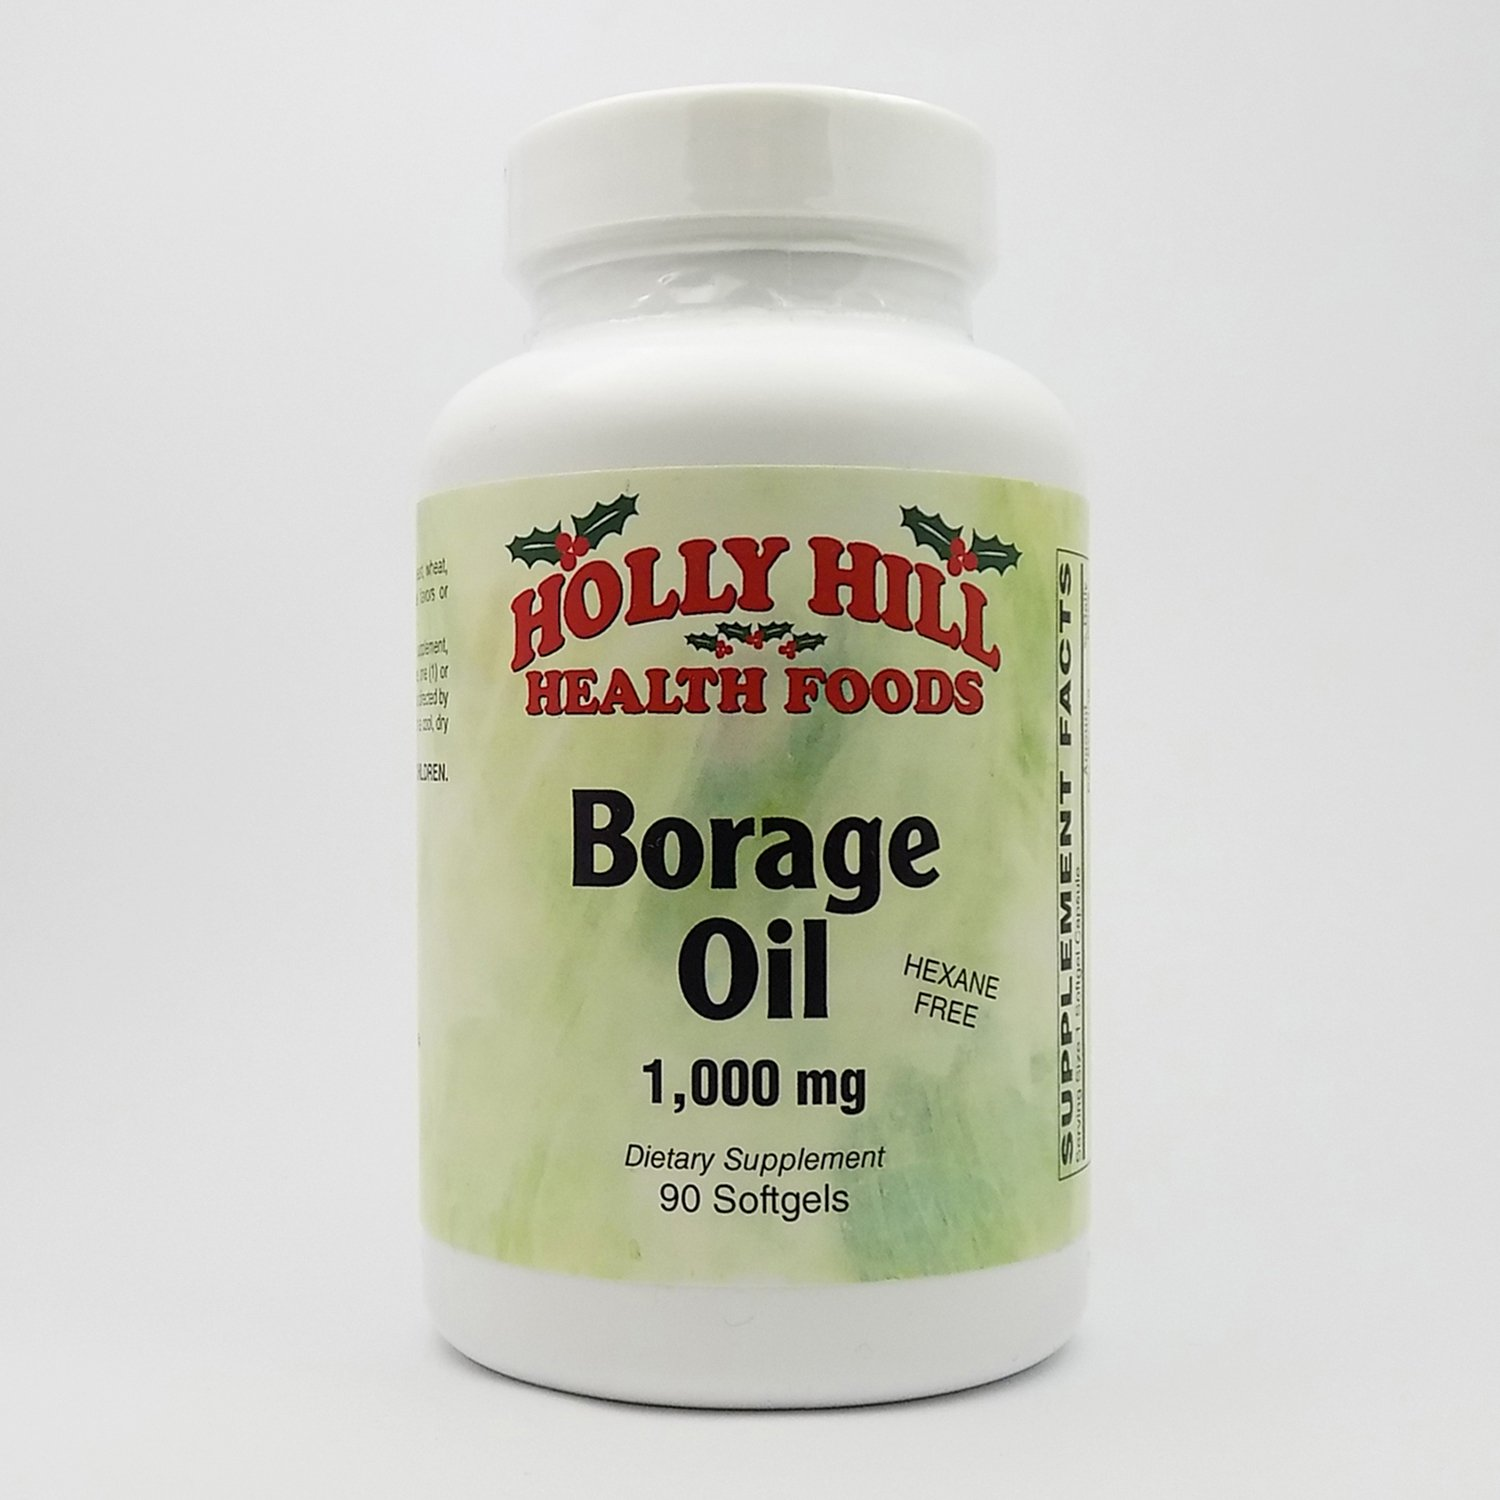 Holly Hill Health Foods, Borage Oil, 1000 MG, Hexane Free, 90 Softgels